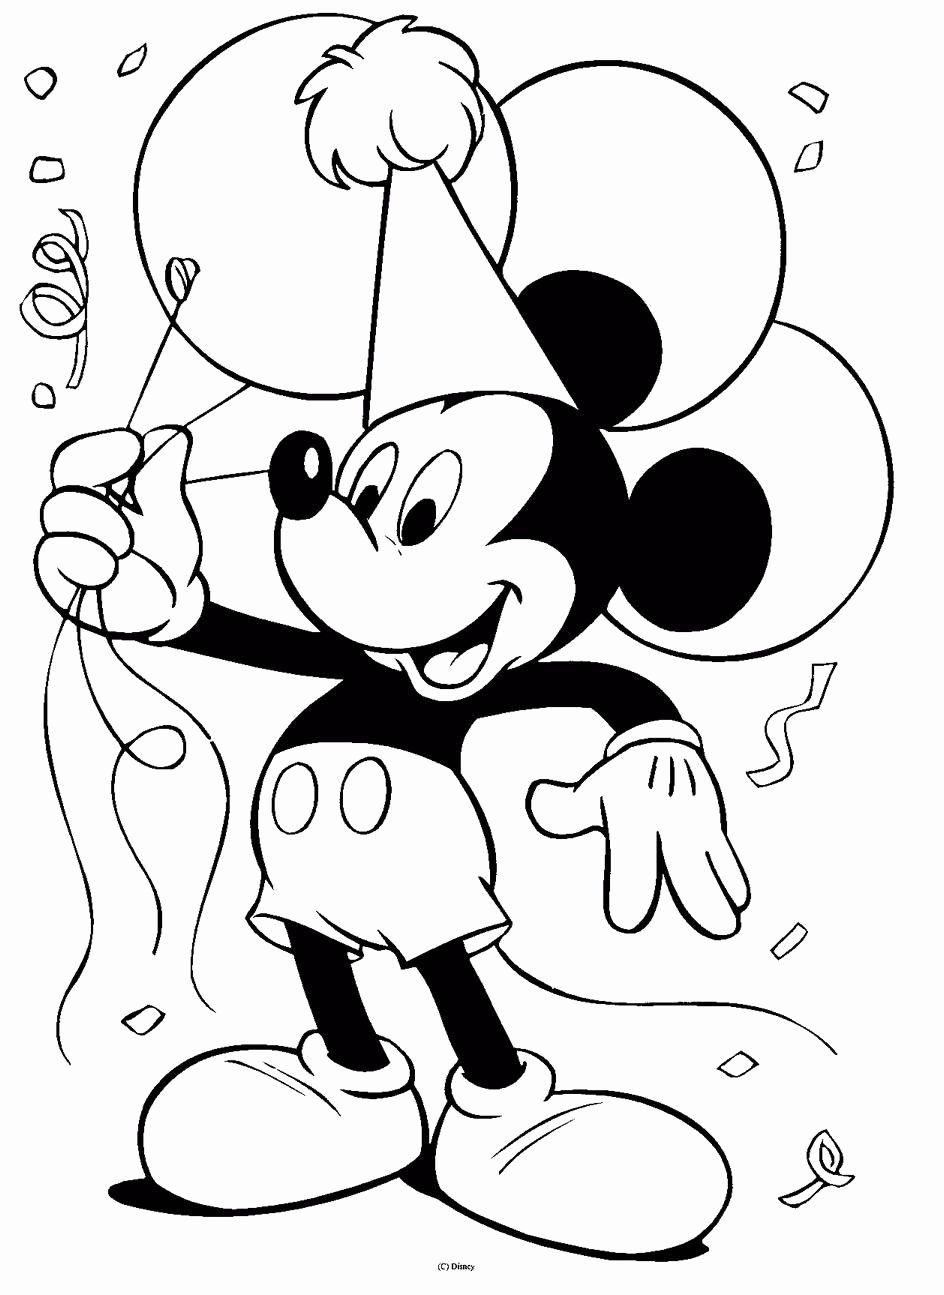 Mickey Mouse Colouring Sheets Awesome Ultimate Pictures Mix Disney Coloring Pages